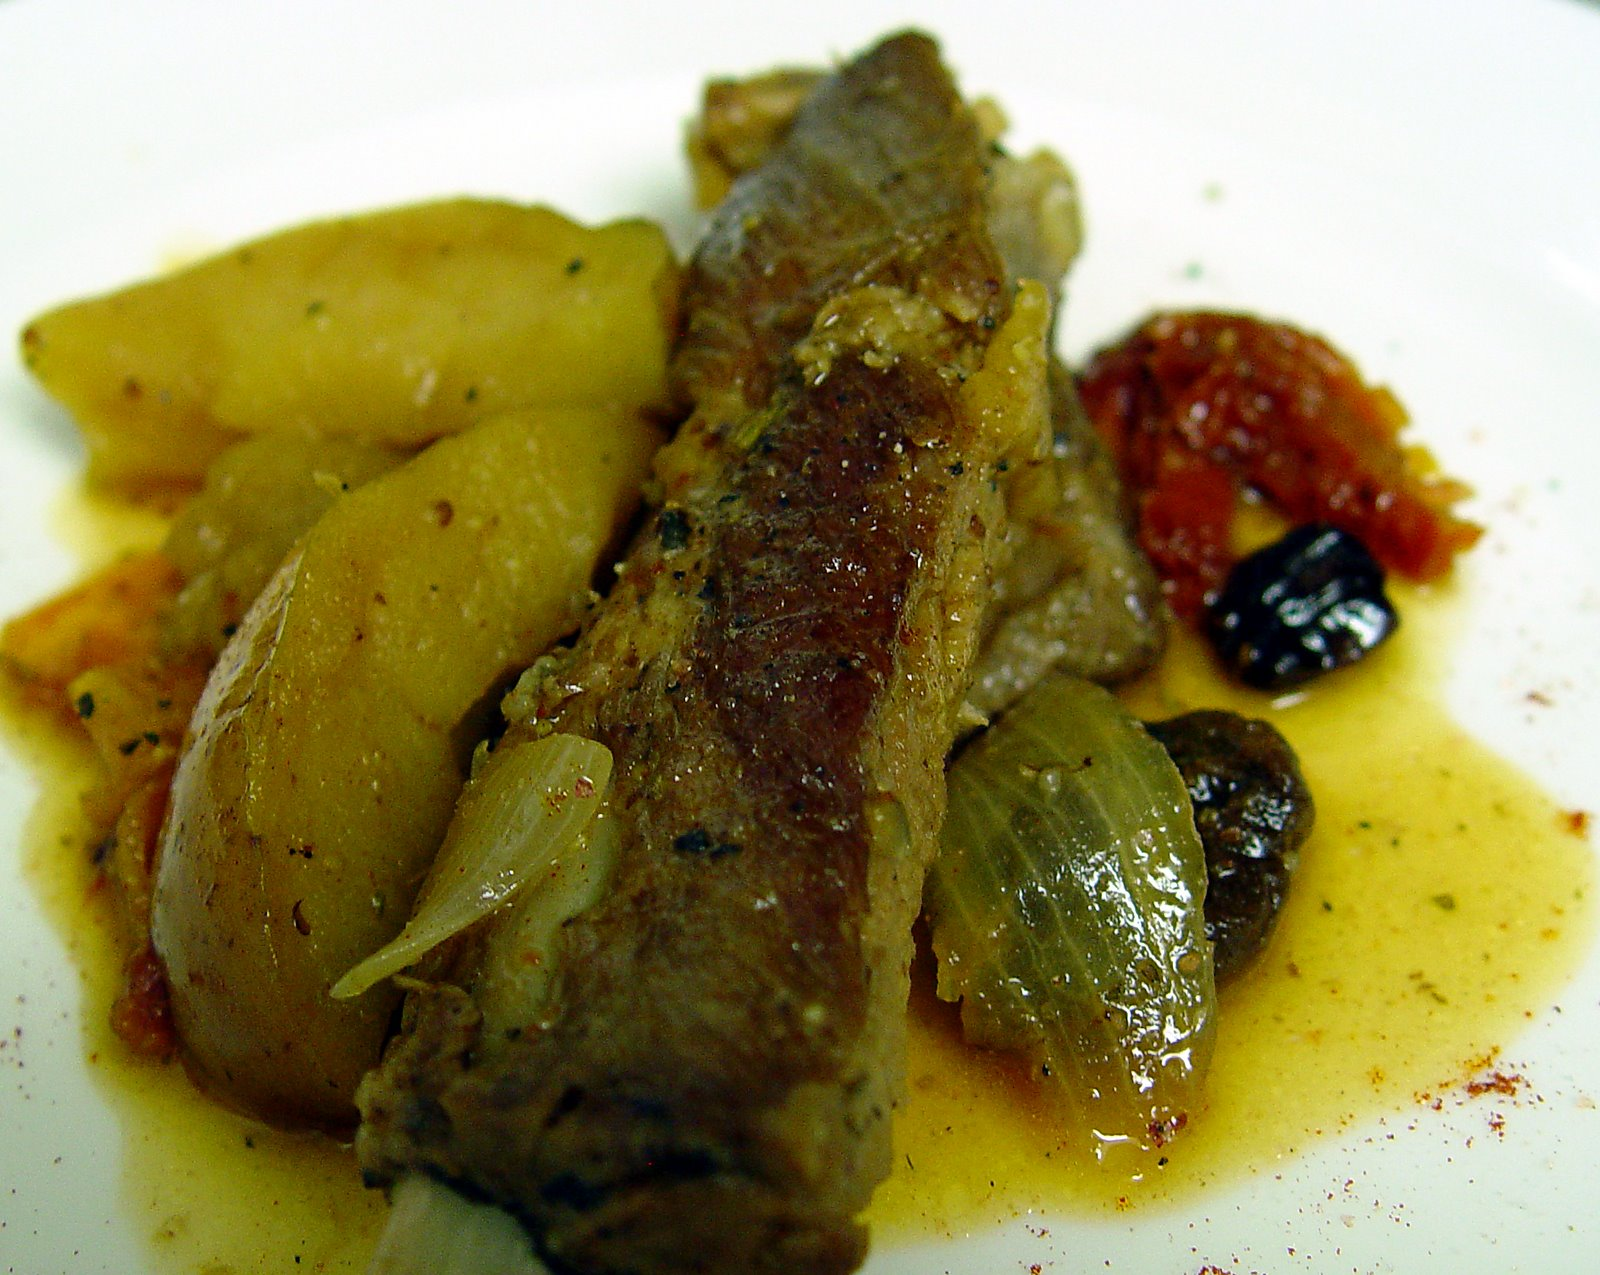 The Errant Potter: Stewed Figs with Apples and Black Pepper